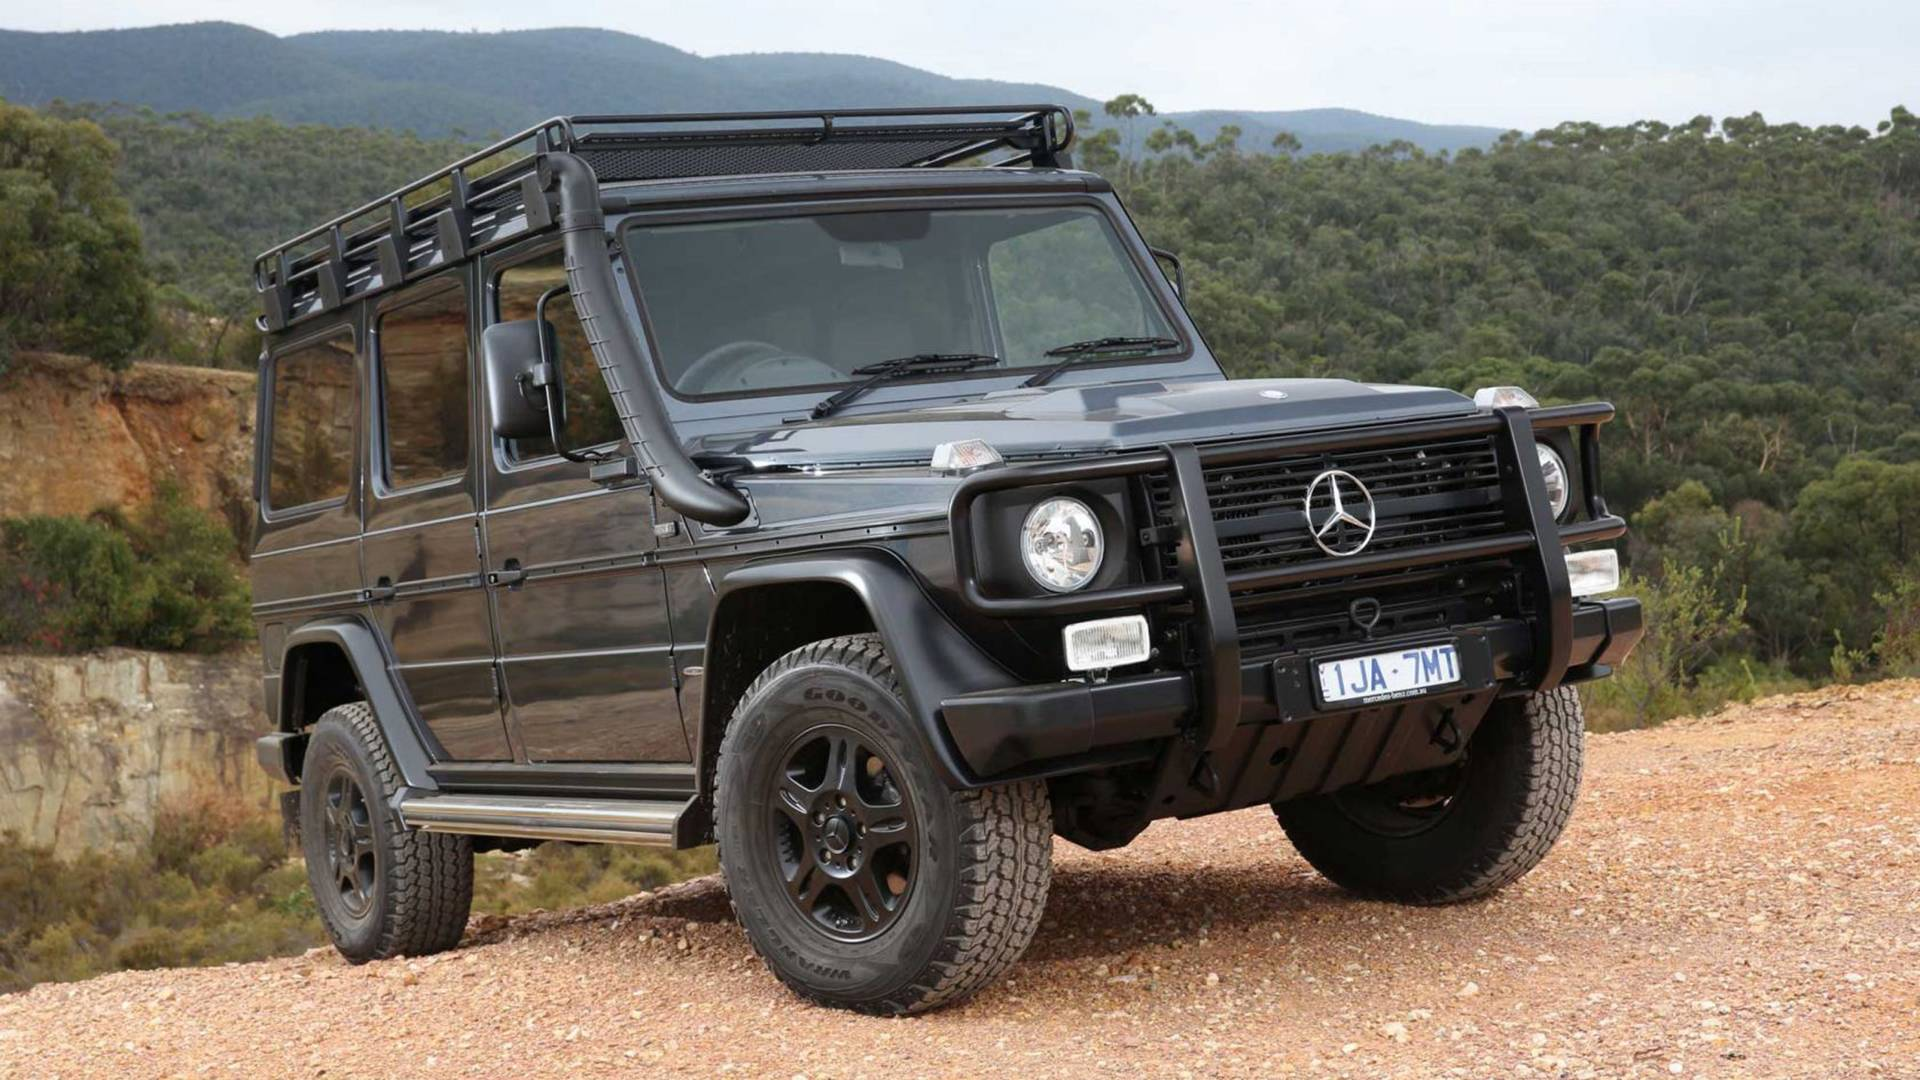 Mercedes Still Selling The Old G-Class In Some Parts Of The